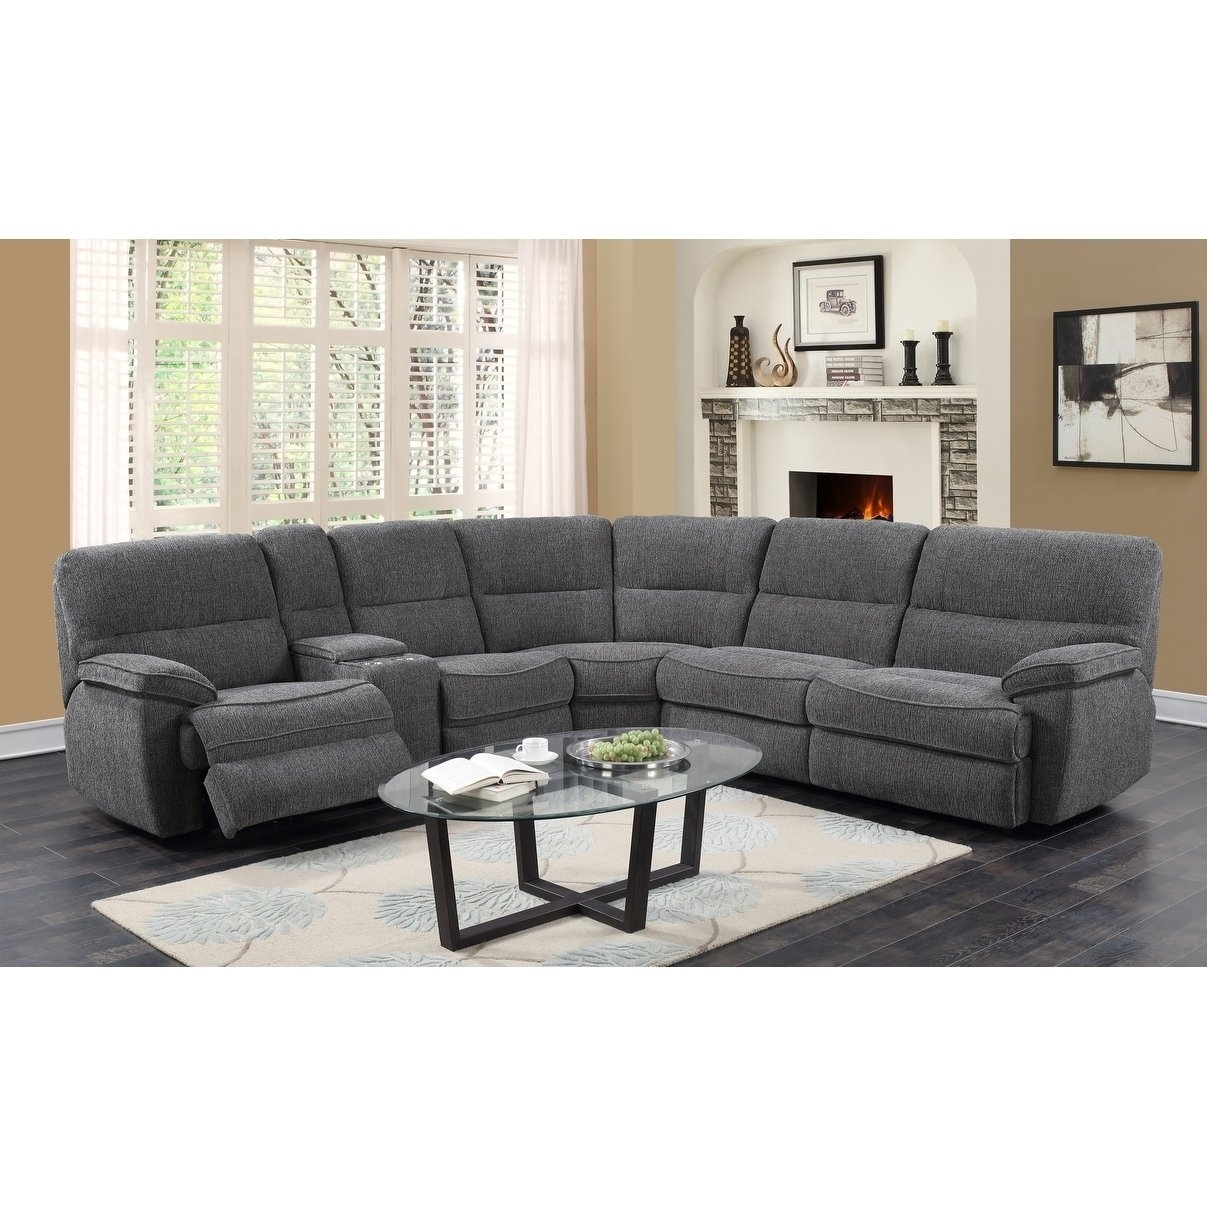 Shop Emerald Home Aurora Platinum 3 Piece Sleeper Sectional – Free Within Aurora 2 Piece Sectionals (View 5 of 25)